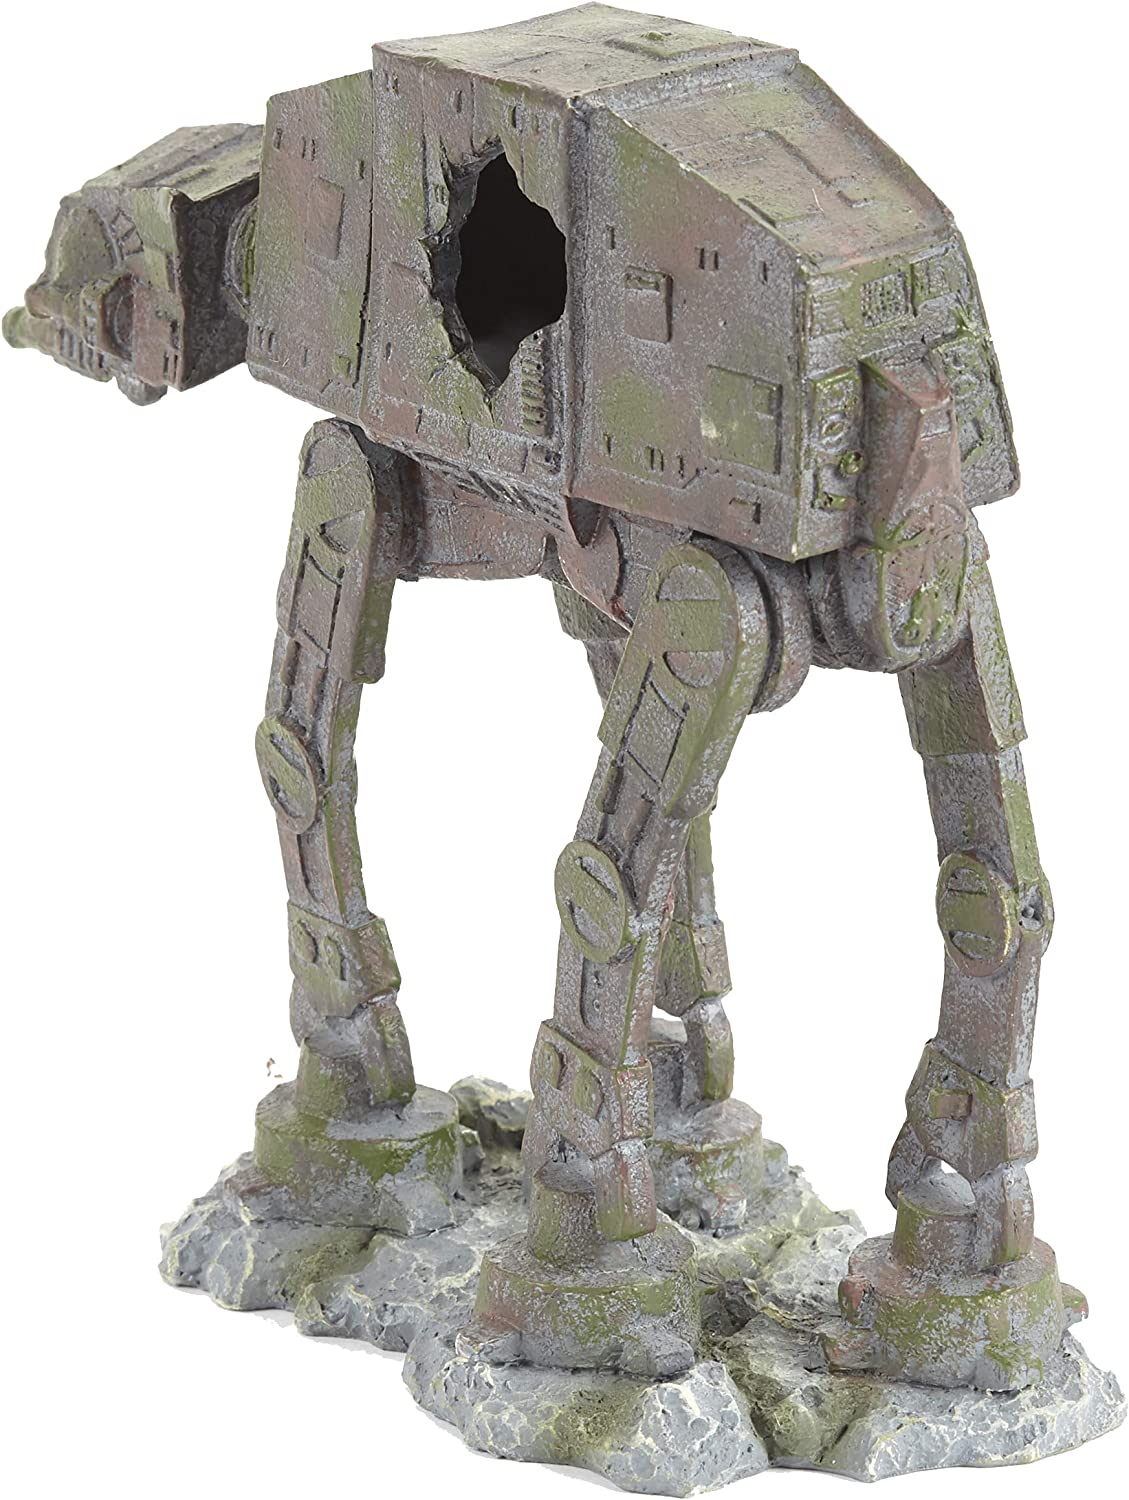 Pet Ting Star Wars At At Fighter Ornament For Aquarium And Vivarium Decoration Amazon Co Uk Pet Supplies